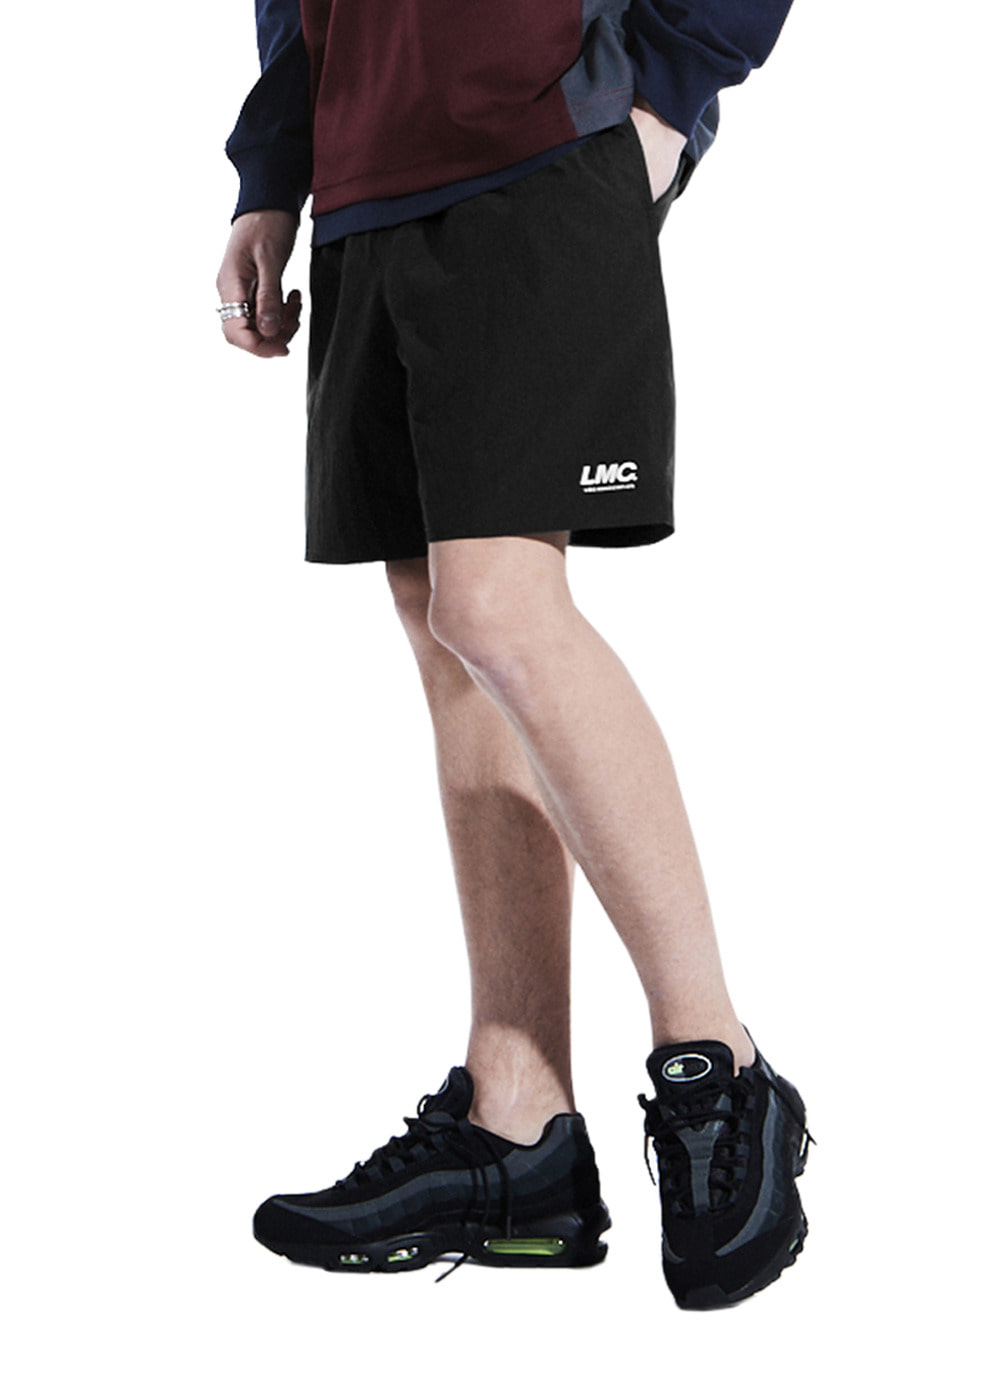 LMC ASSOCIATION TEAM SHORTS black